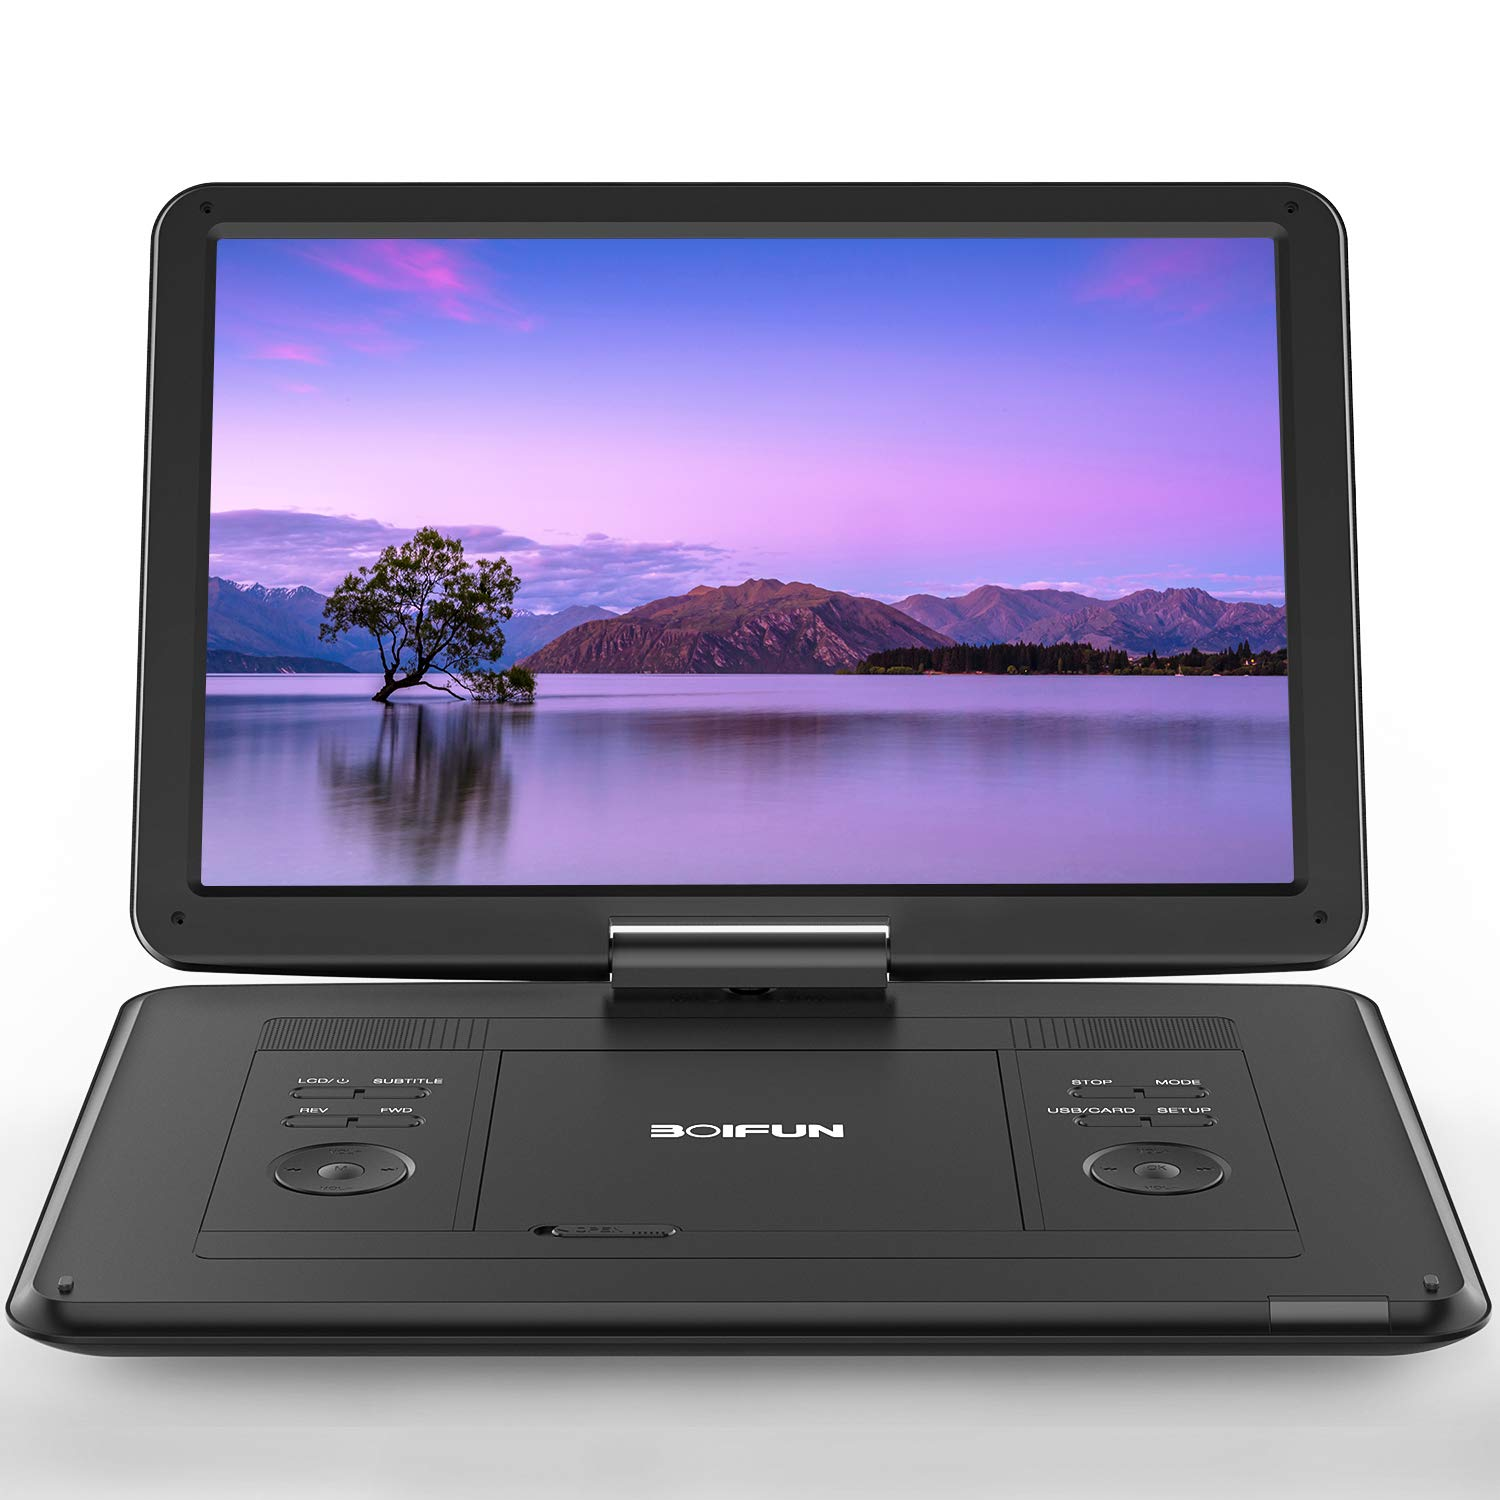 17.5'' Portable DVD Player with Large HD Screen, 6 Hours Rechargeable Battery, Support USB/SD Card/Sync TV and Multiple Disc Formats, High Volume Speaker, Black